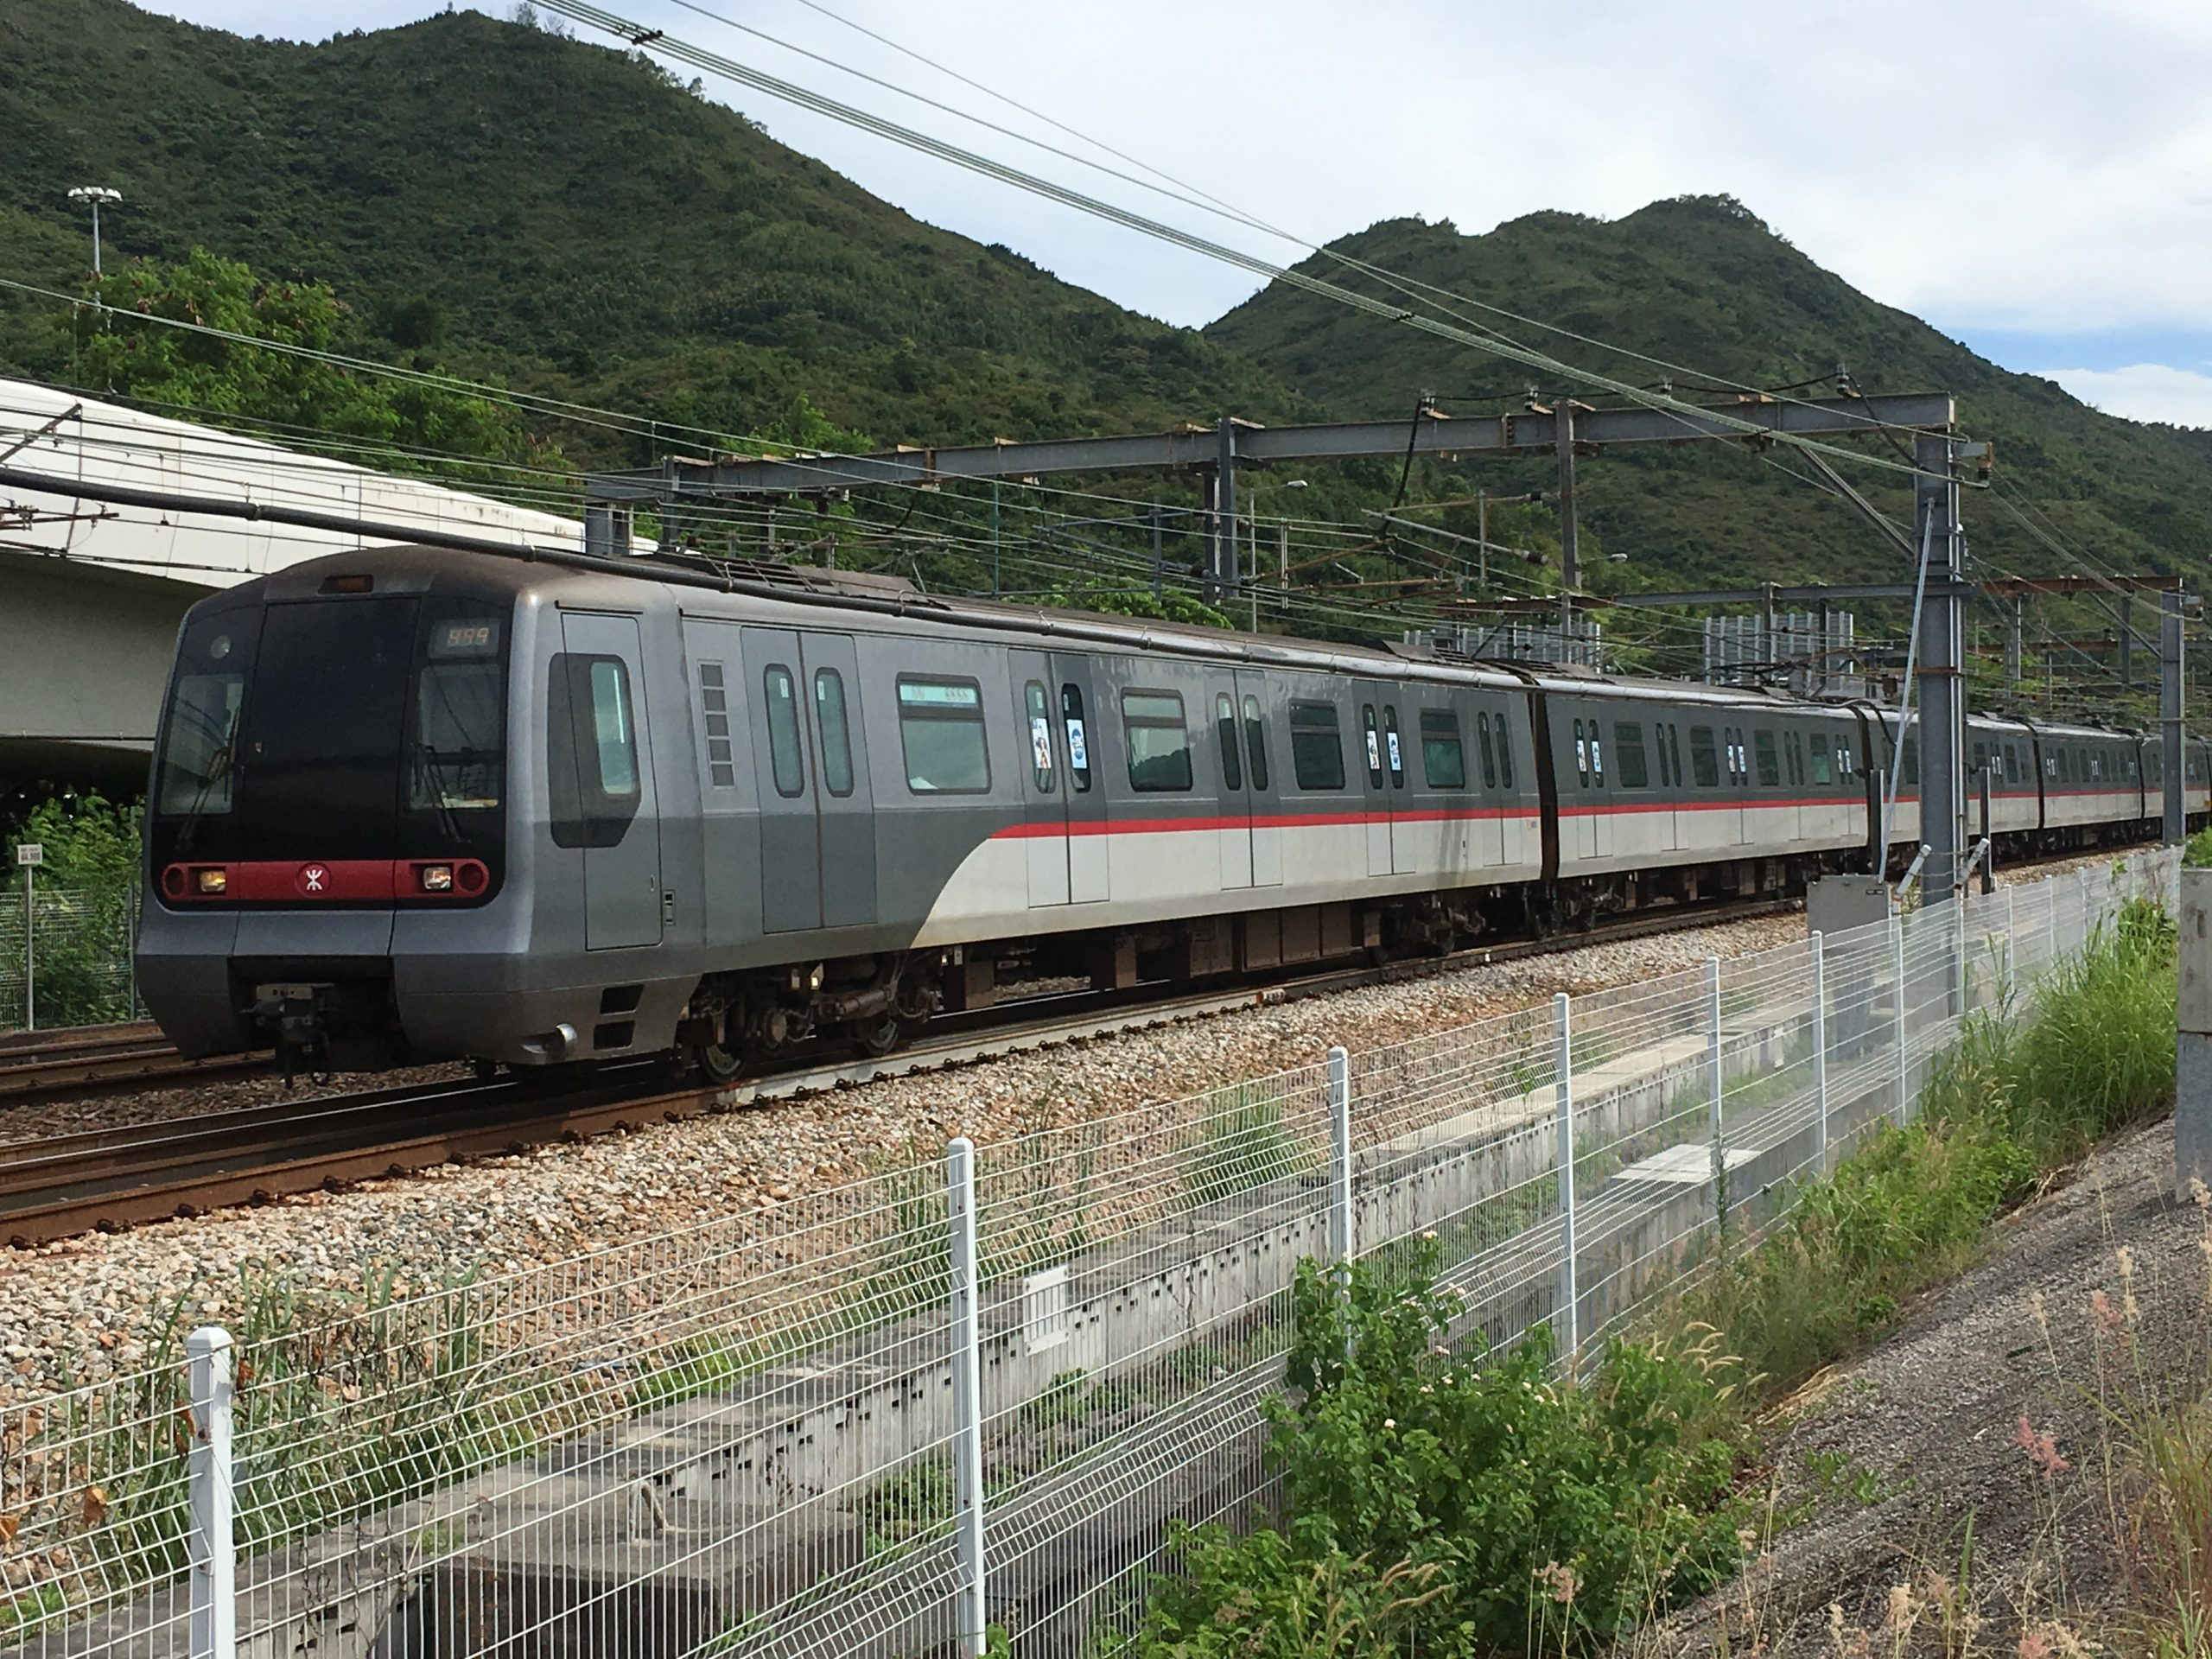 Train on the Tung Chung line